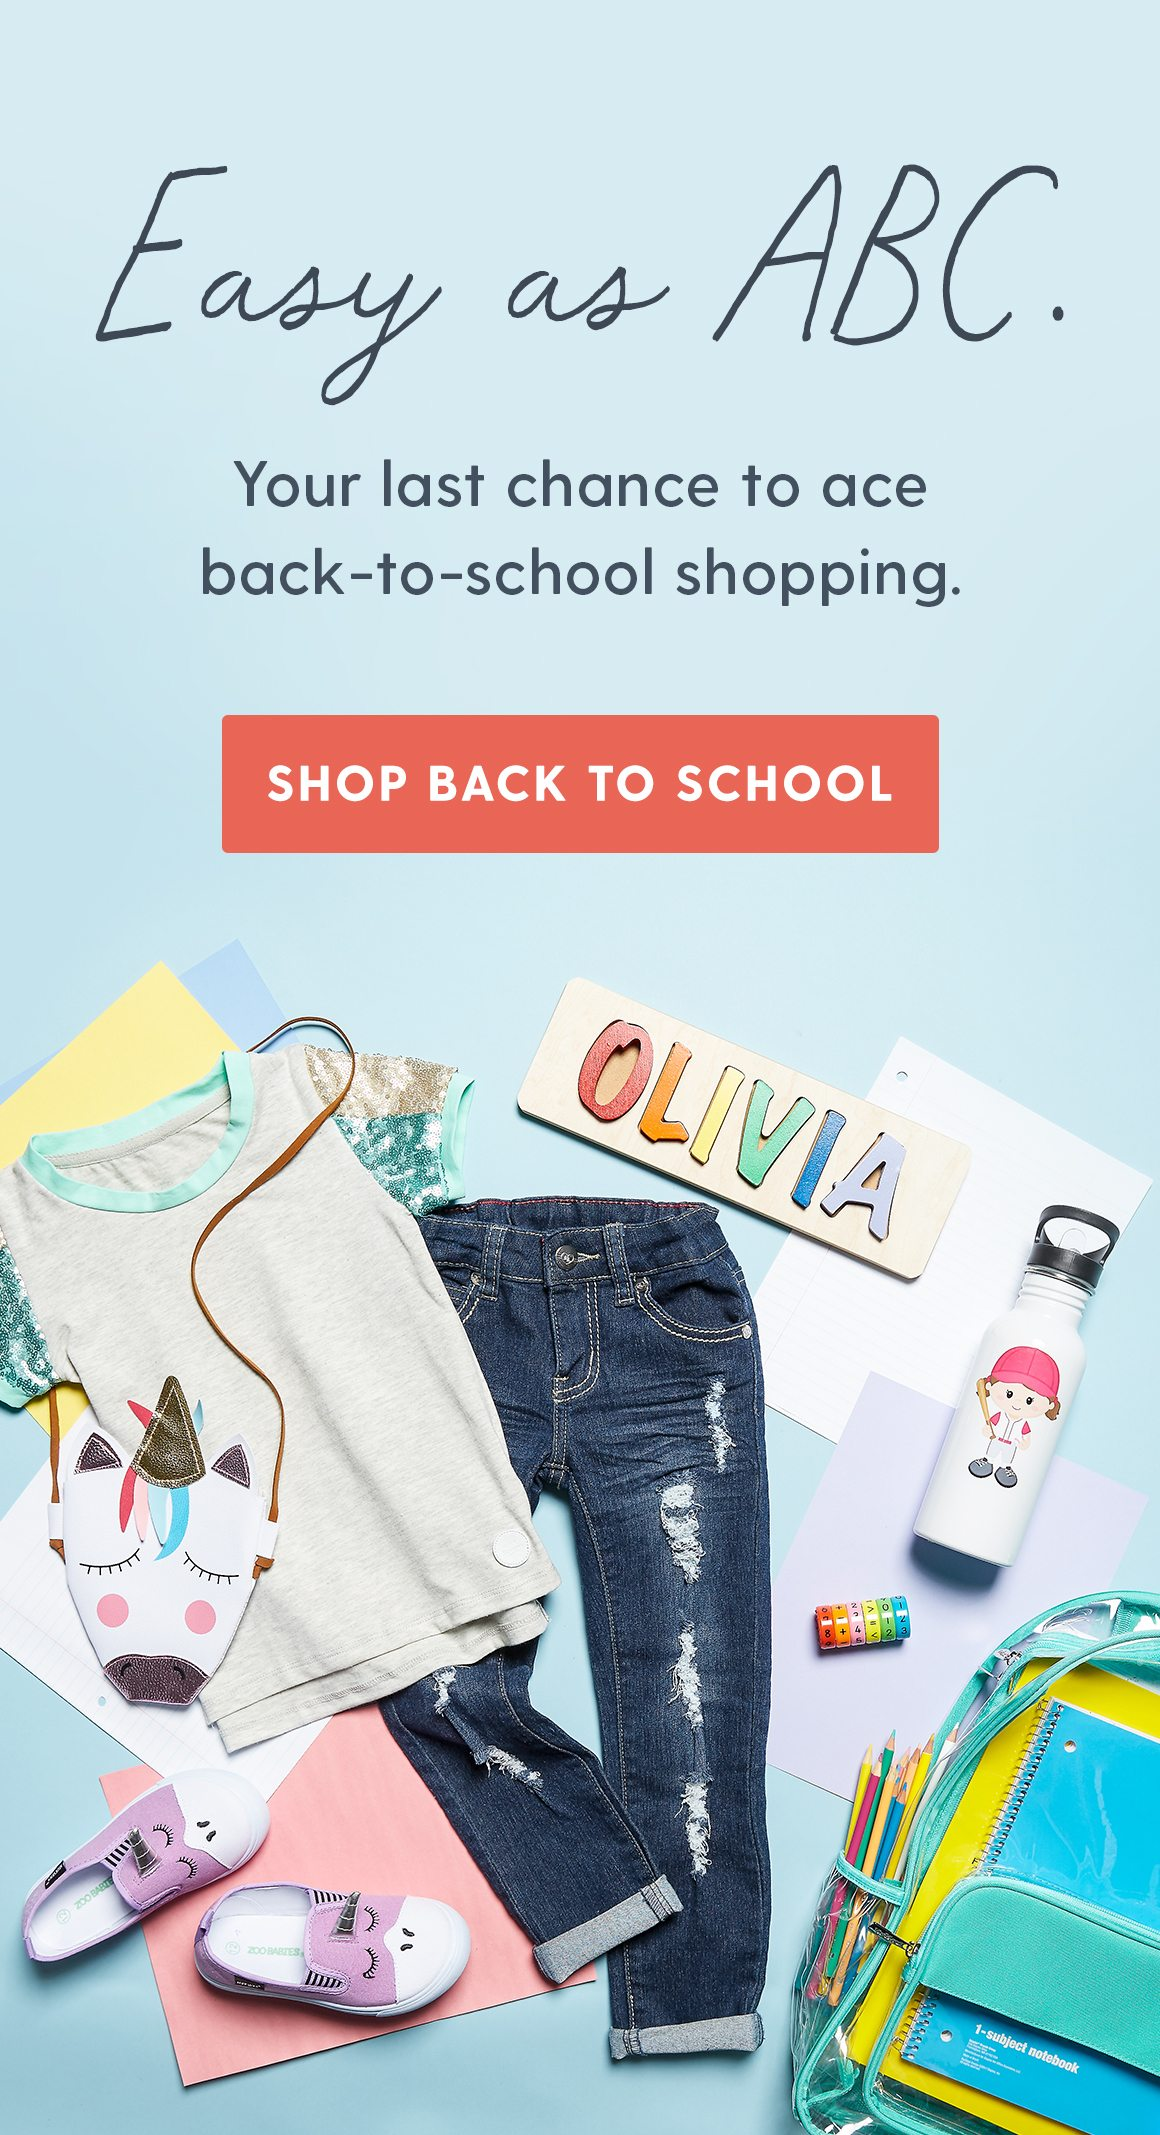 Easy as ABC. Your last chance to ace back-to-school shopping. Shop Back to School.